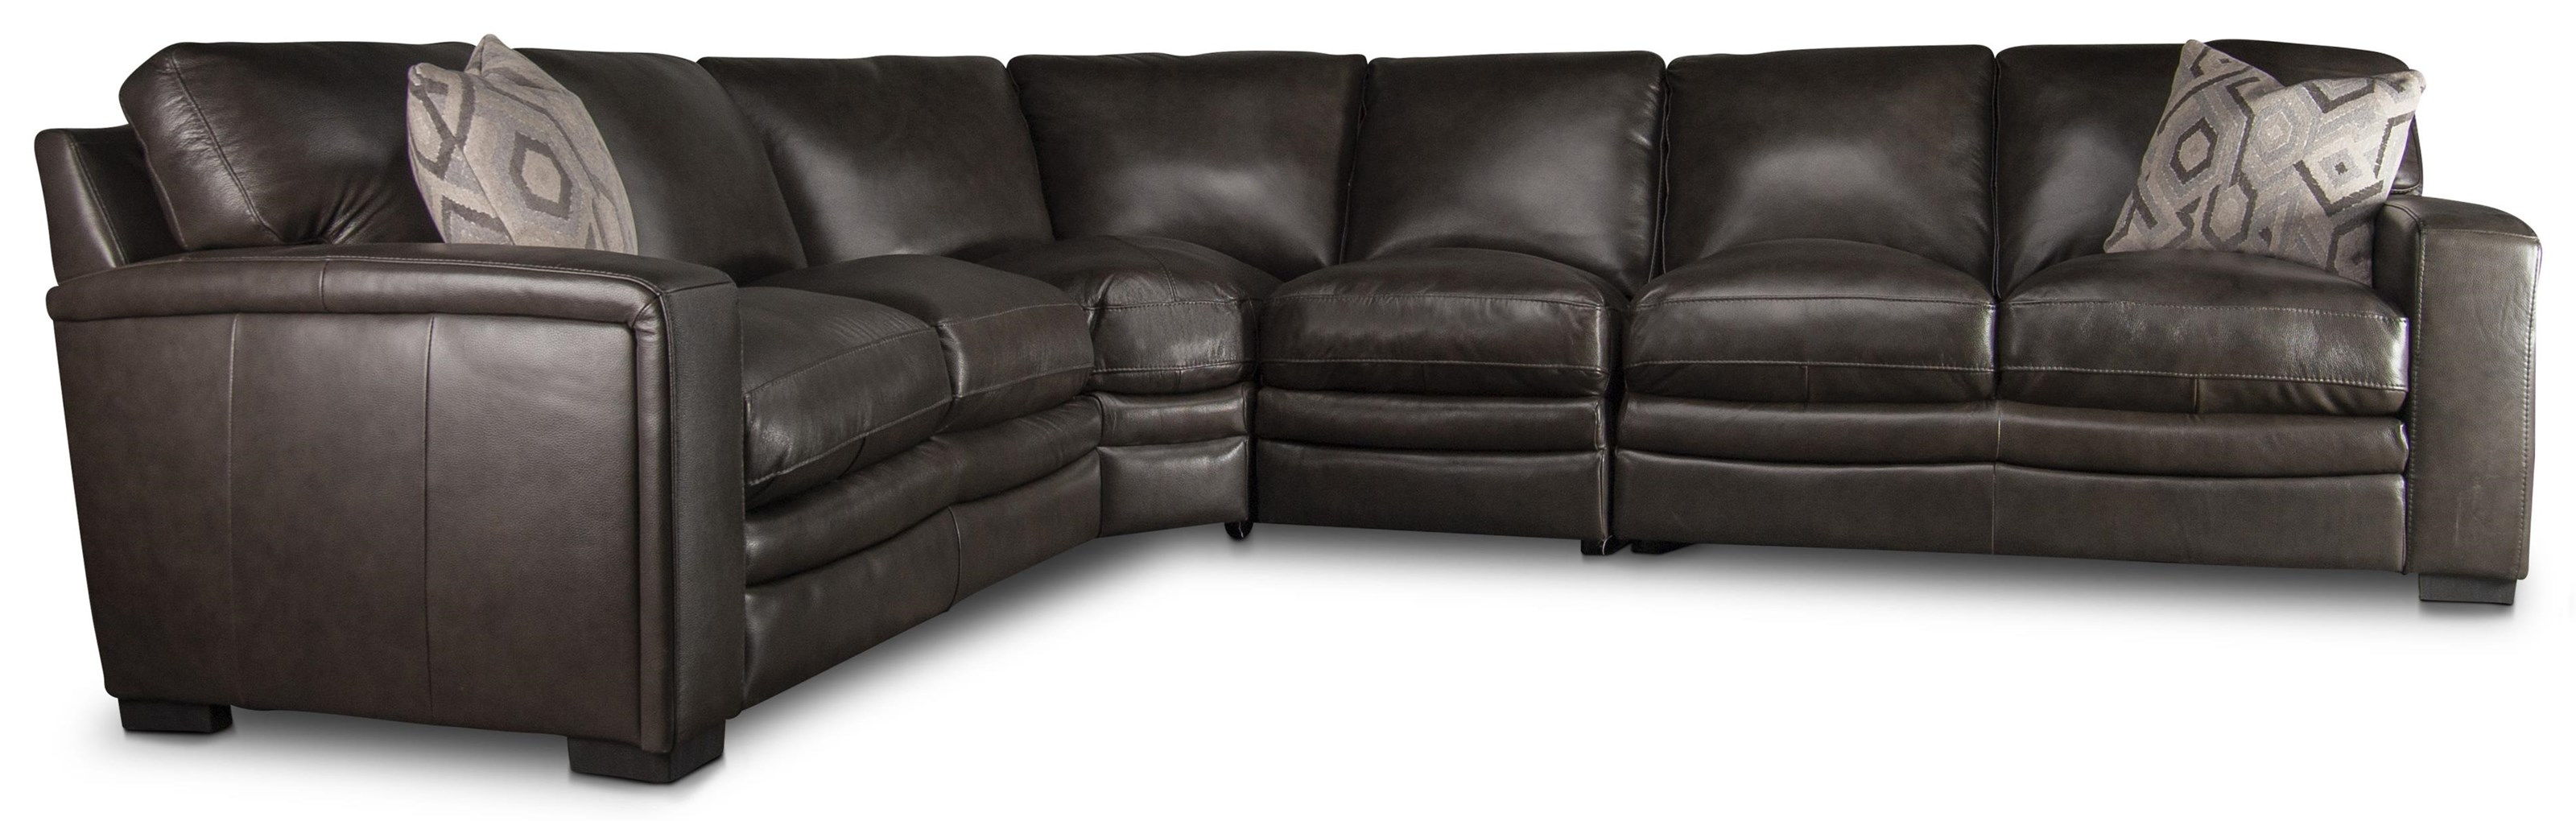 Maricopa Maricopa 100% Leather Sectional Sofa by Kuka Home at Morris Home